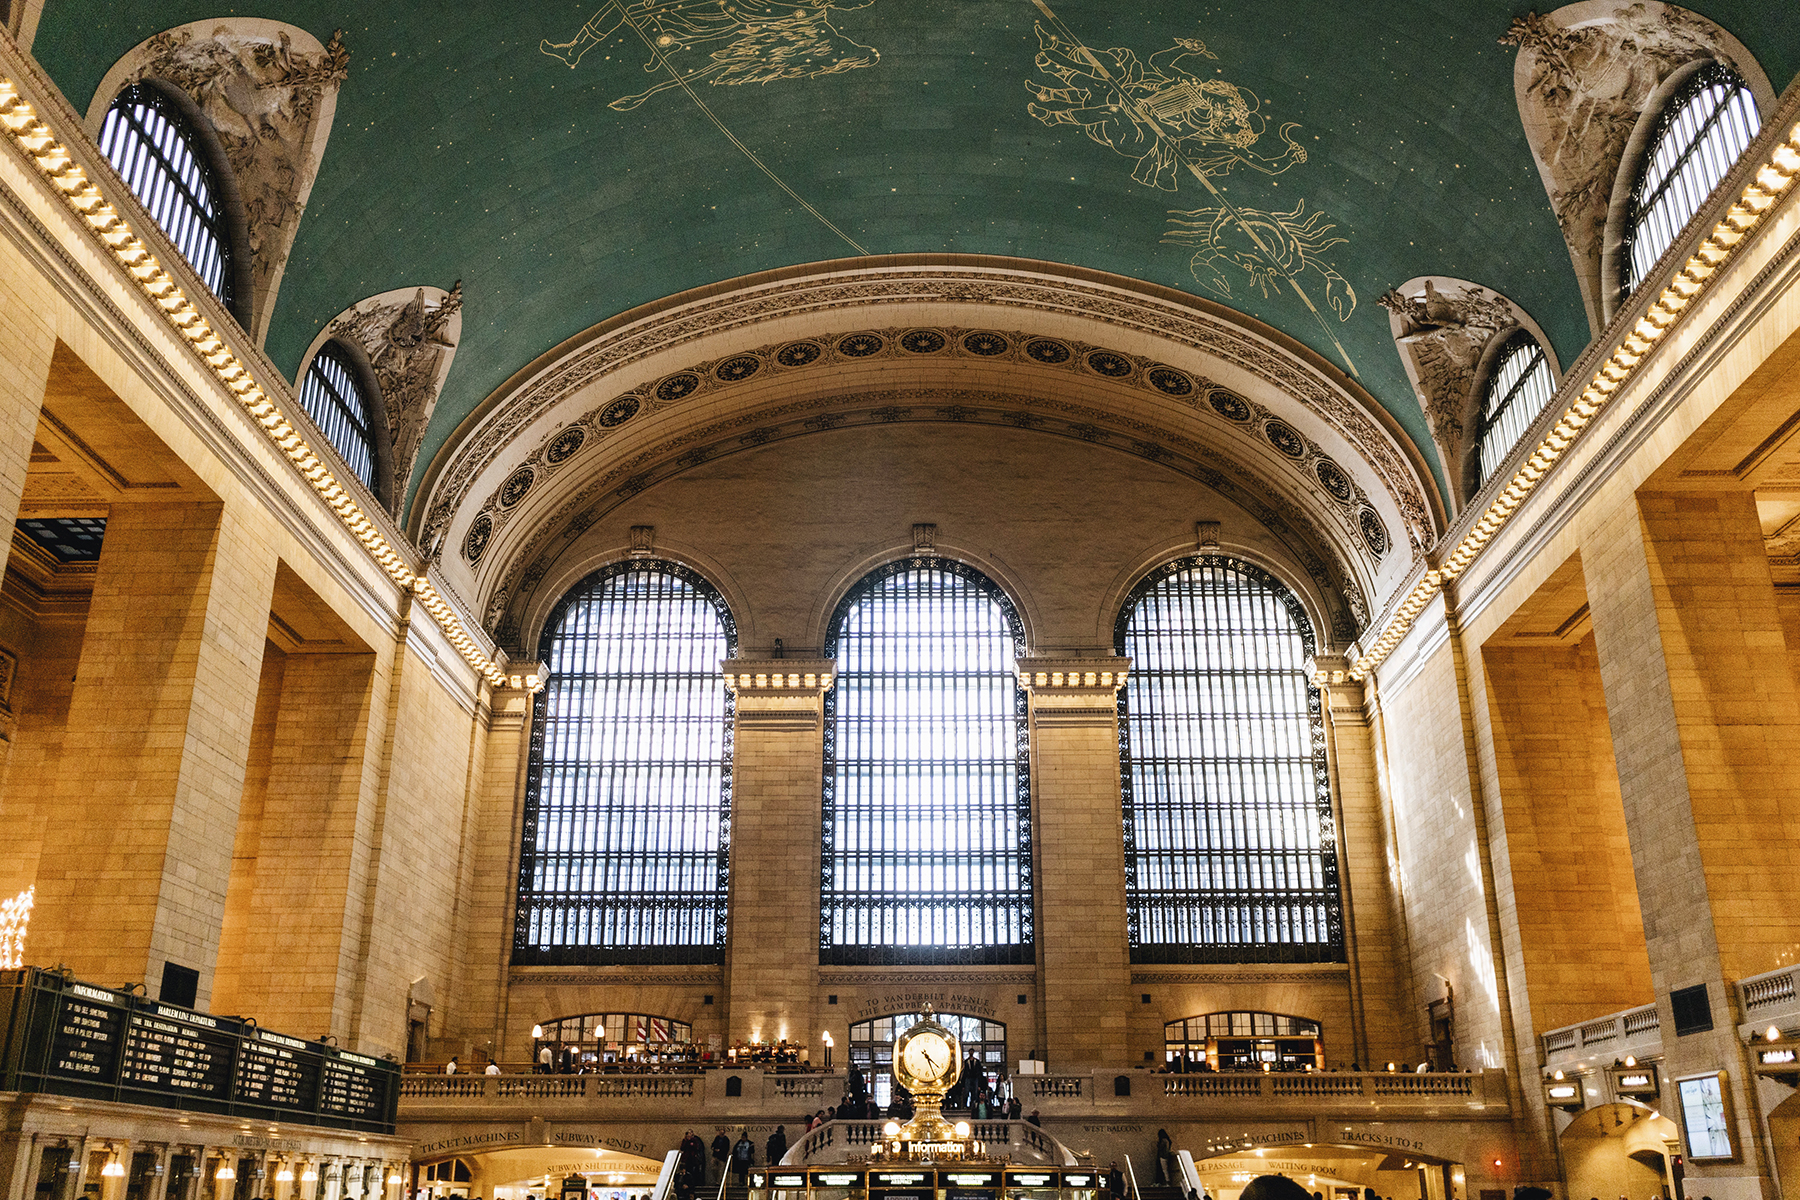 Grand Central station - Top 10 things to do in NYC with young kids | New York City travel guide